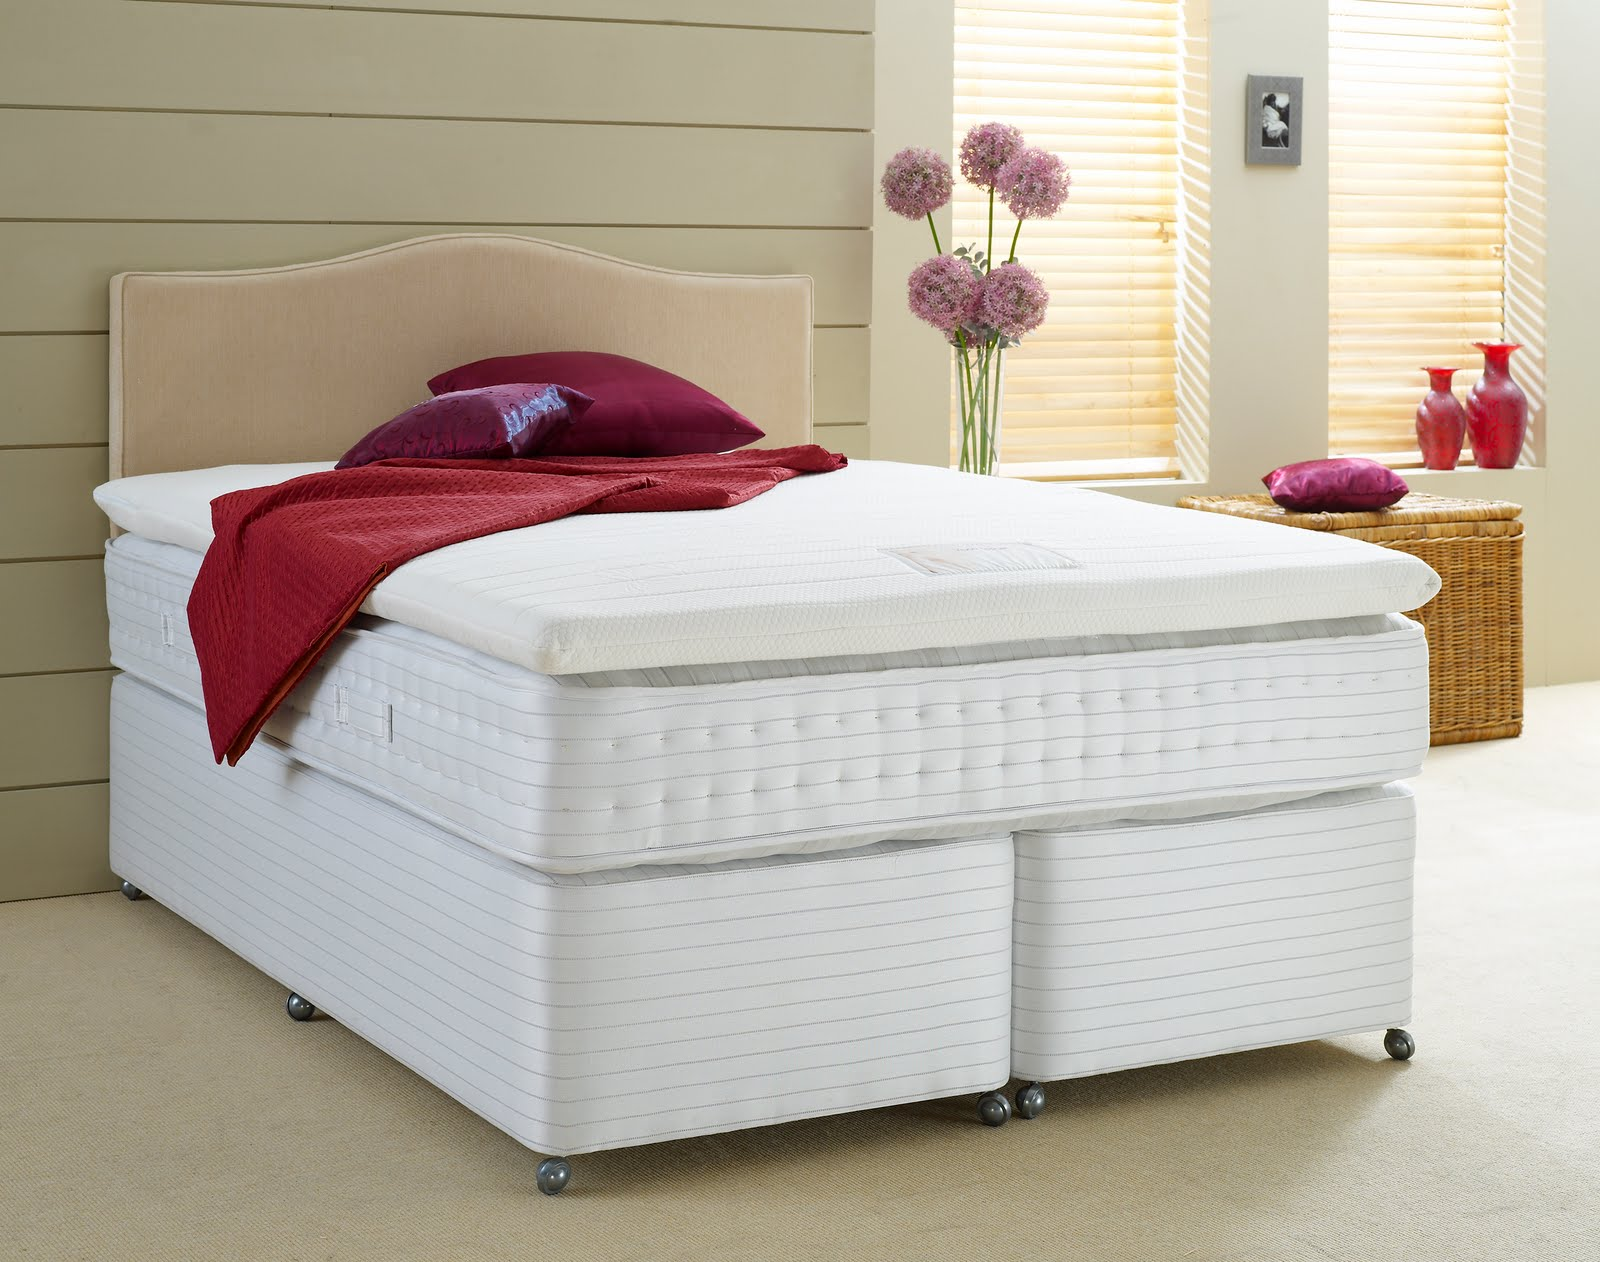 Choosing The Right Mattresses